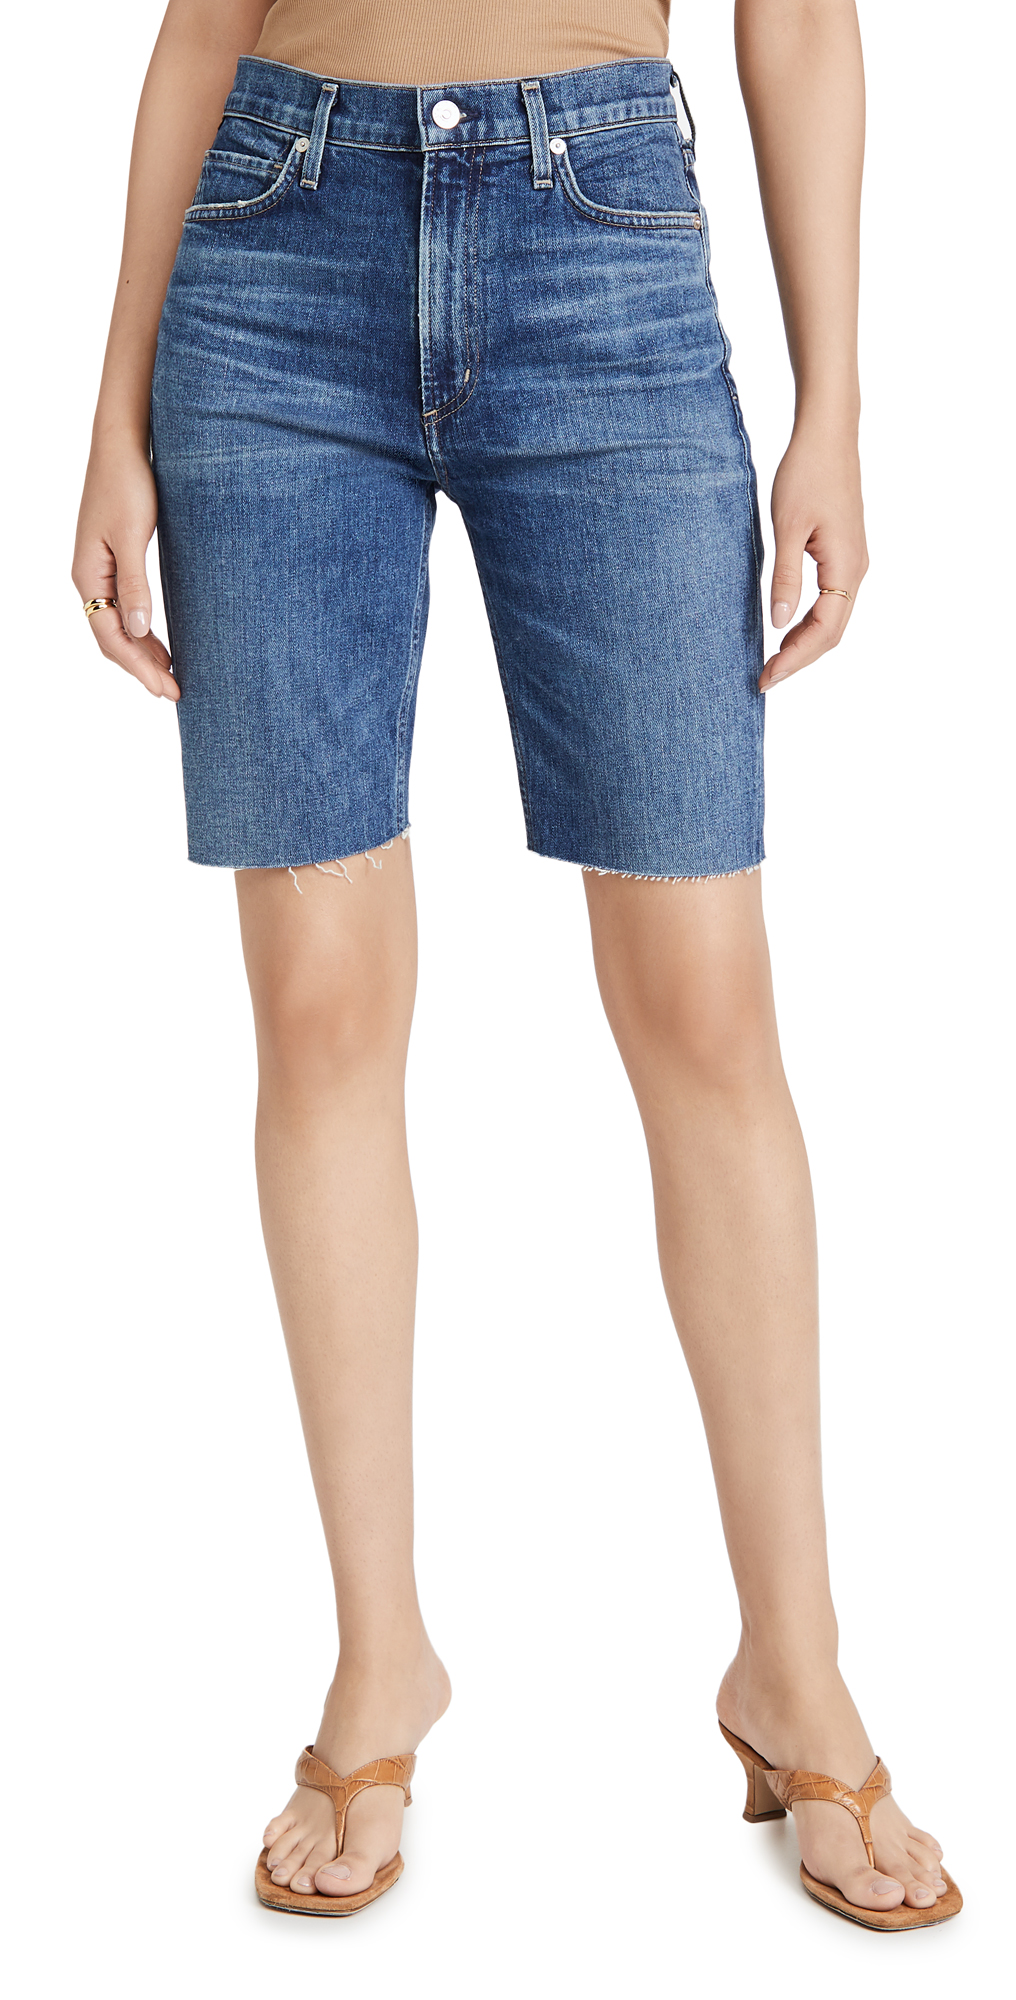 Citizens of Humanity Tamryn Bike Shorts